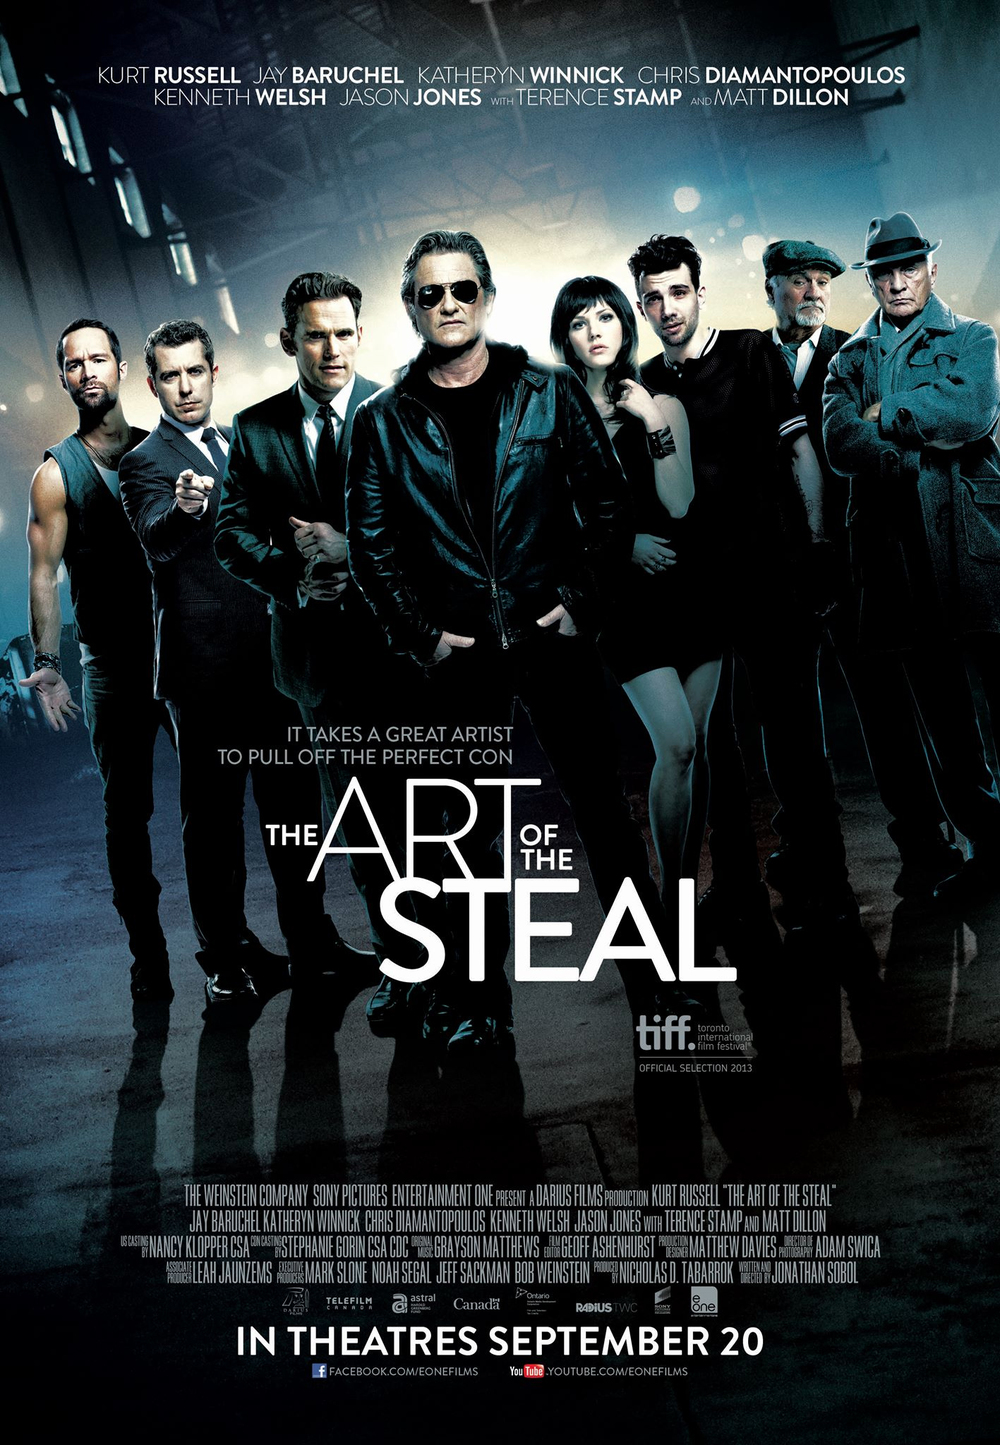 trailer-for-the-heist-film-art-of-steel-with-kurt-russell.jpg